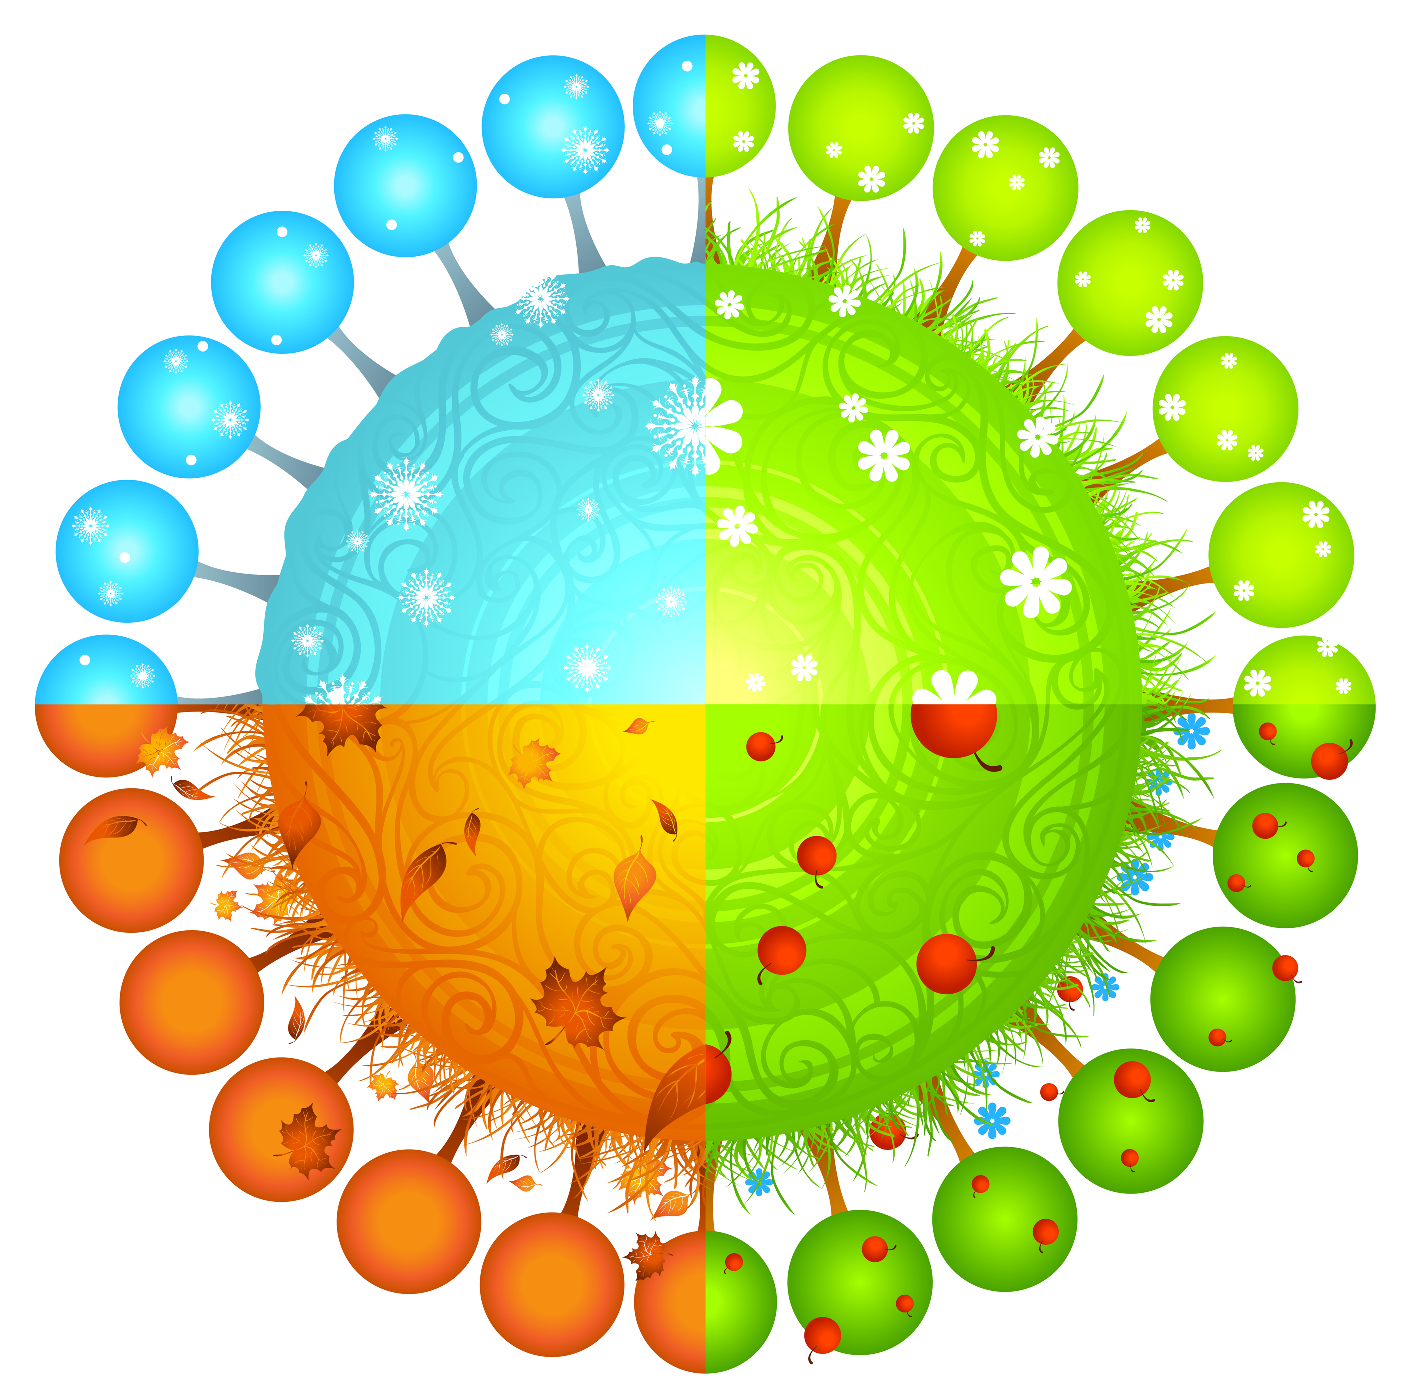 Circle clipart science. Seasons gateway to north